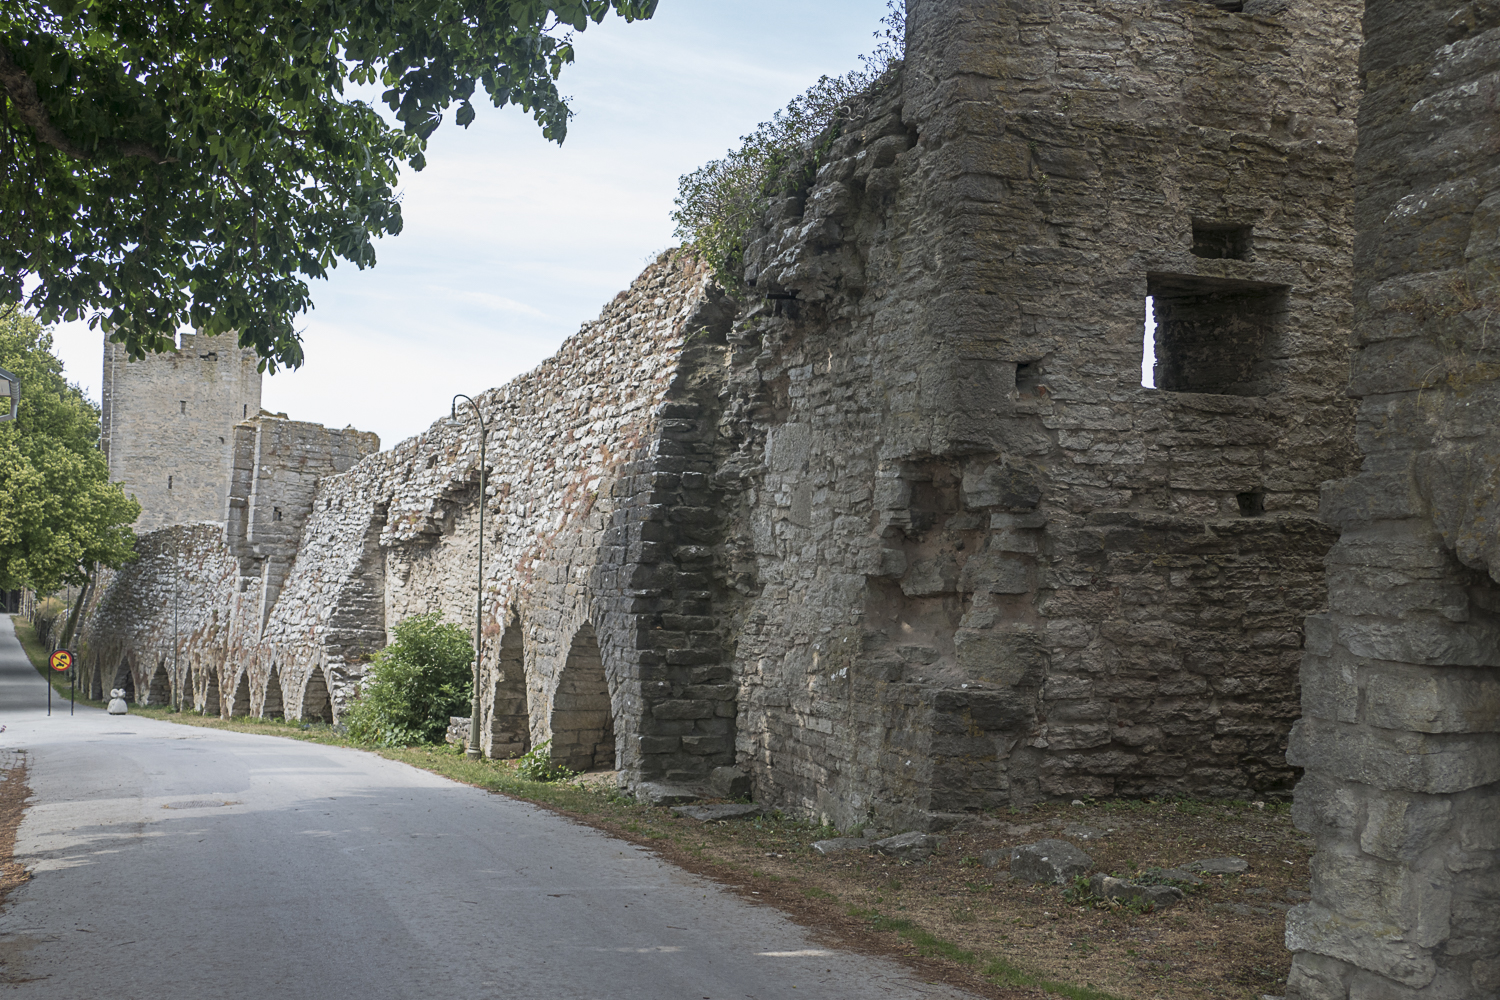 The Visby town wall